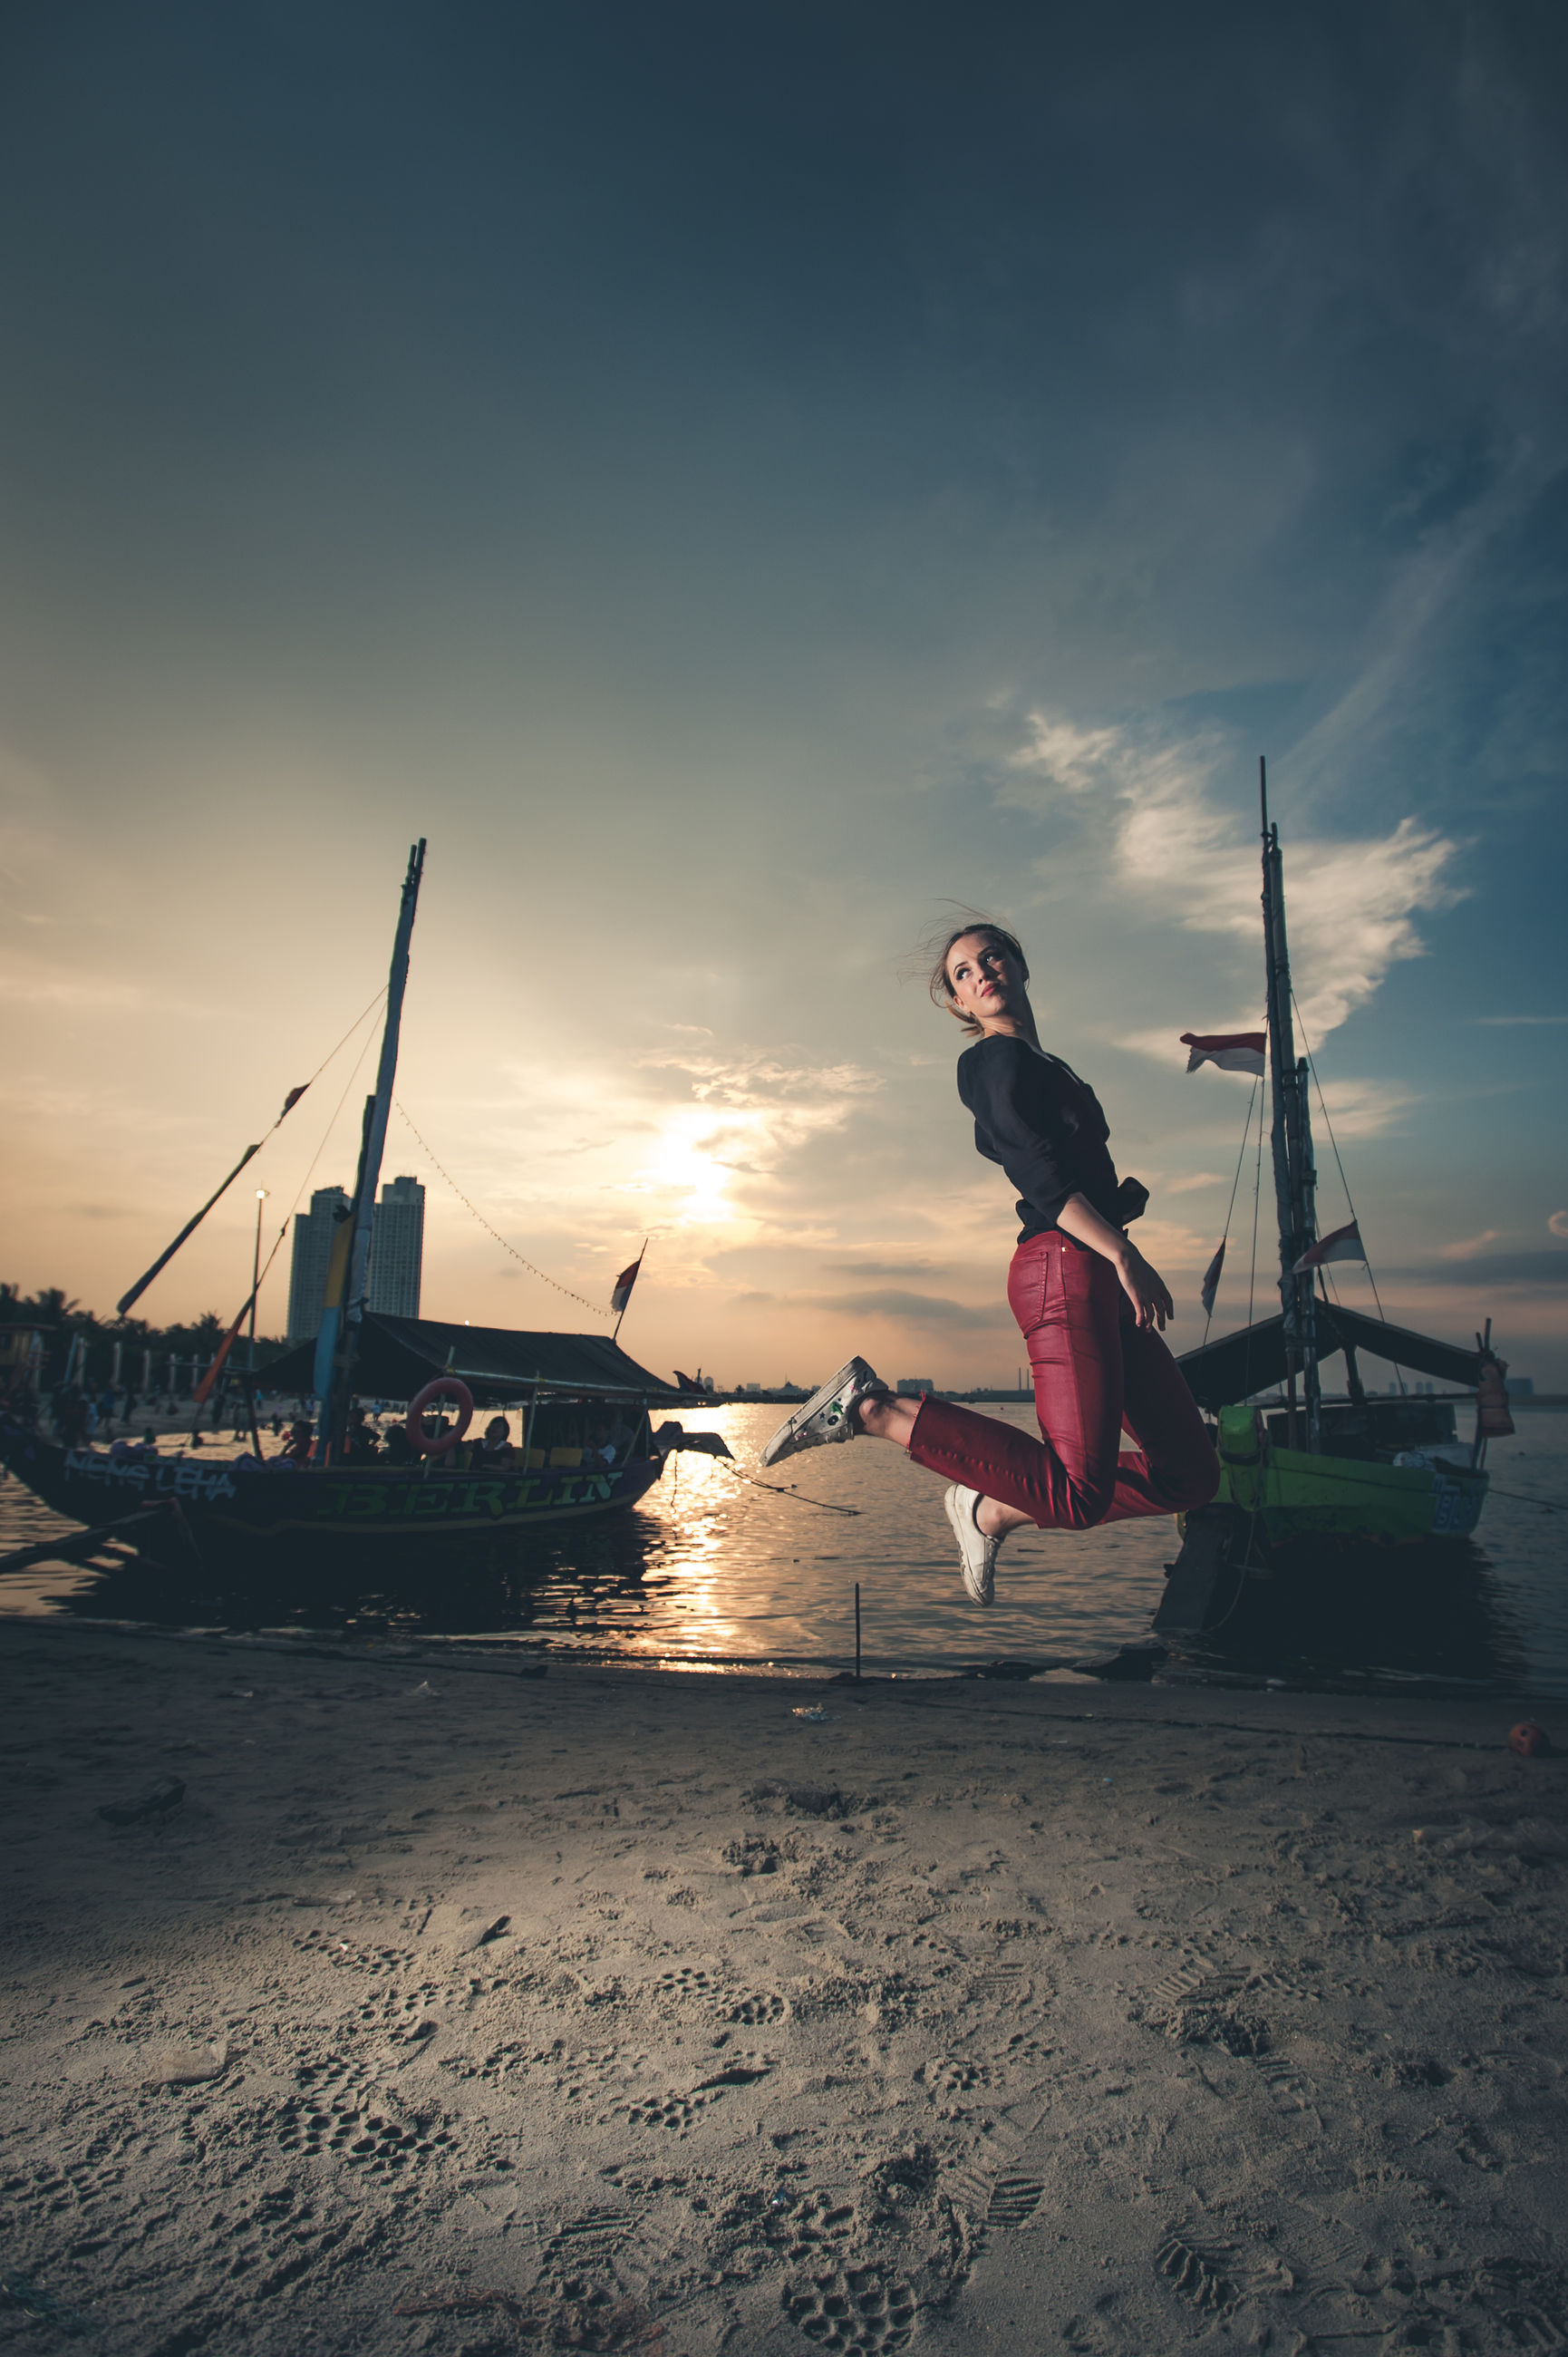 sky, nautical vessel, water, transportation, sea, mode of transportation, sunset, cloud - sky, one person, real people, nature, beach, land, full length, lifestyles, beauty in nature, outdoors, leisure activity